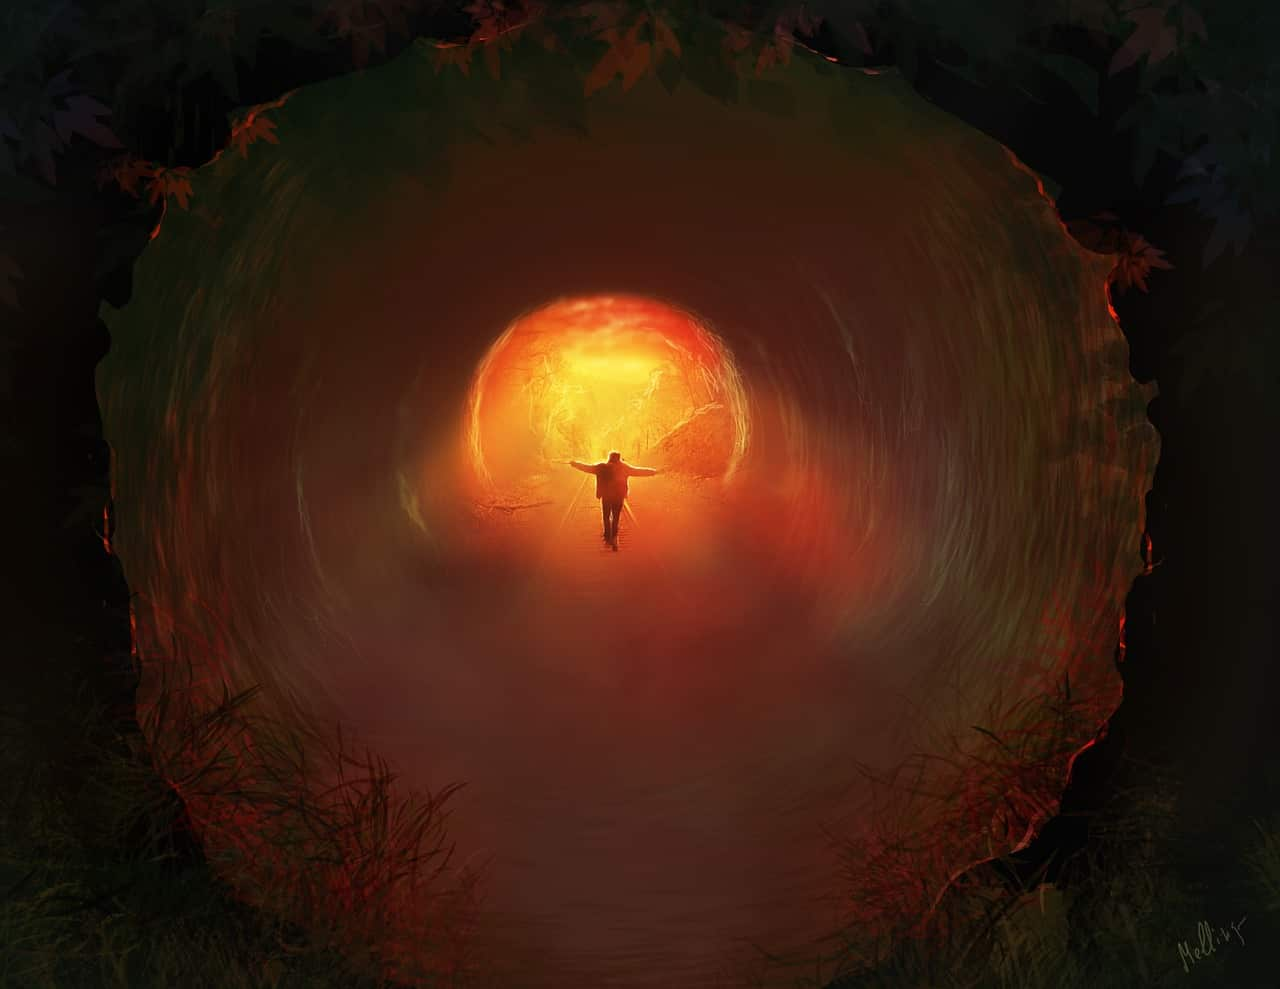 Image of a man walking through inner work tunnel